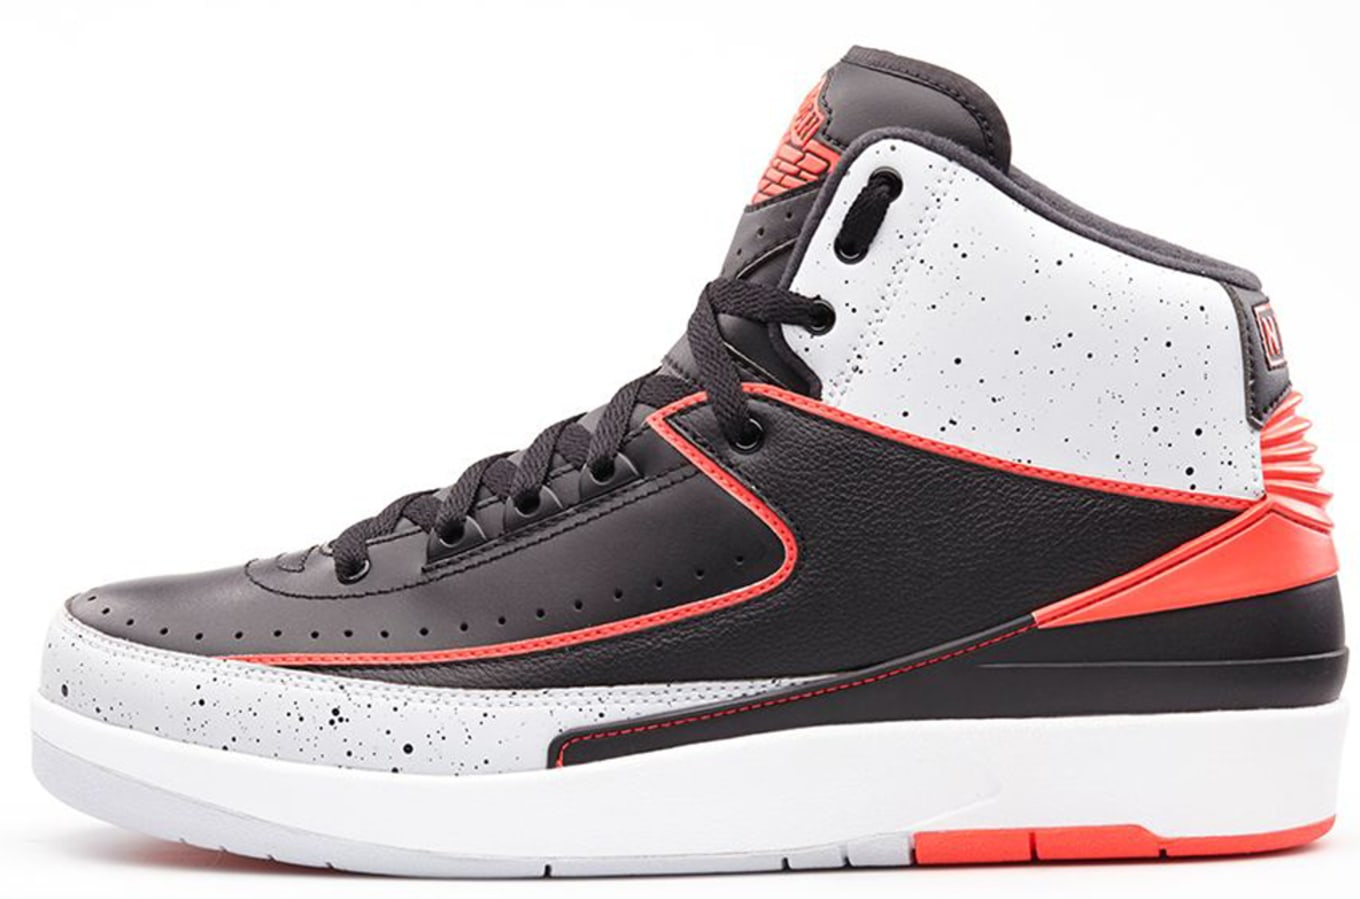 separation shoes e33d3 b3f38 Air Jordan 2: The Definitive Guide to Colorways | Sole Collector